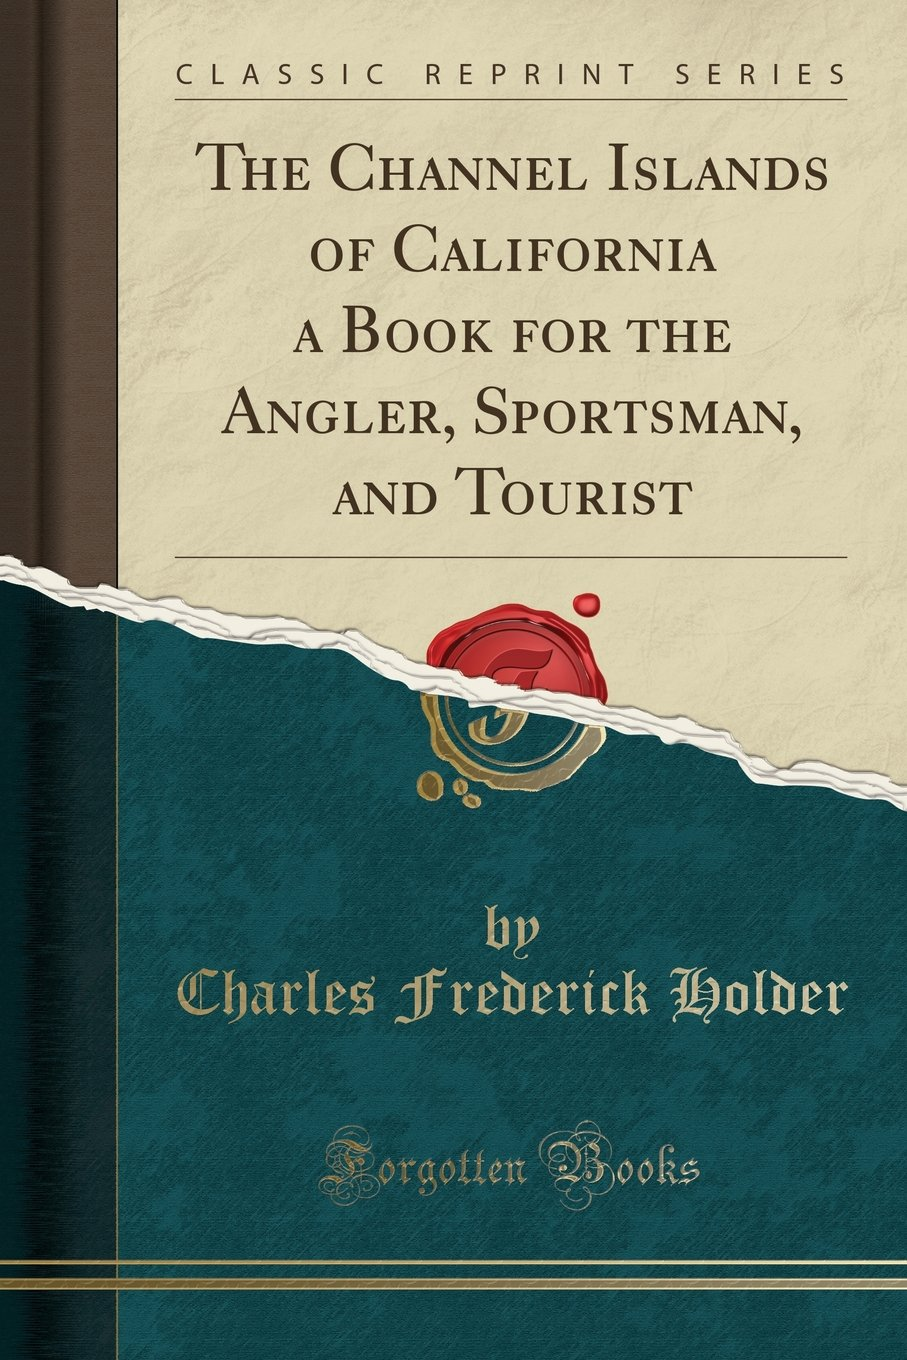 Download The Channel Islands of California a Book for the Angler, Sportsman, and Tourist (Classic Reprint) PDF